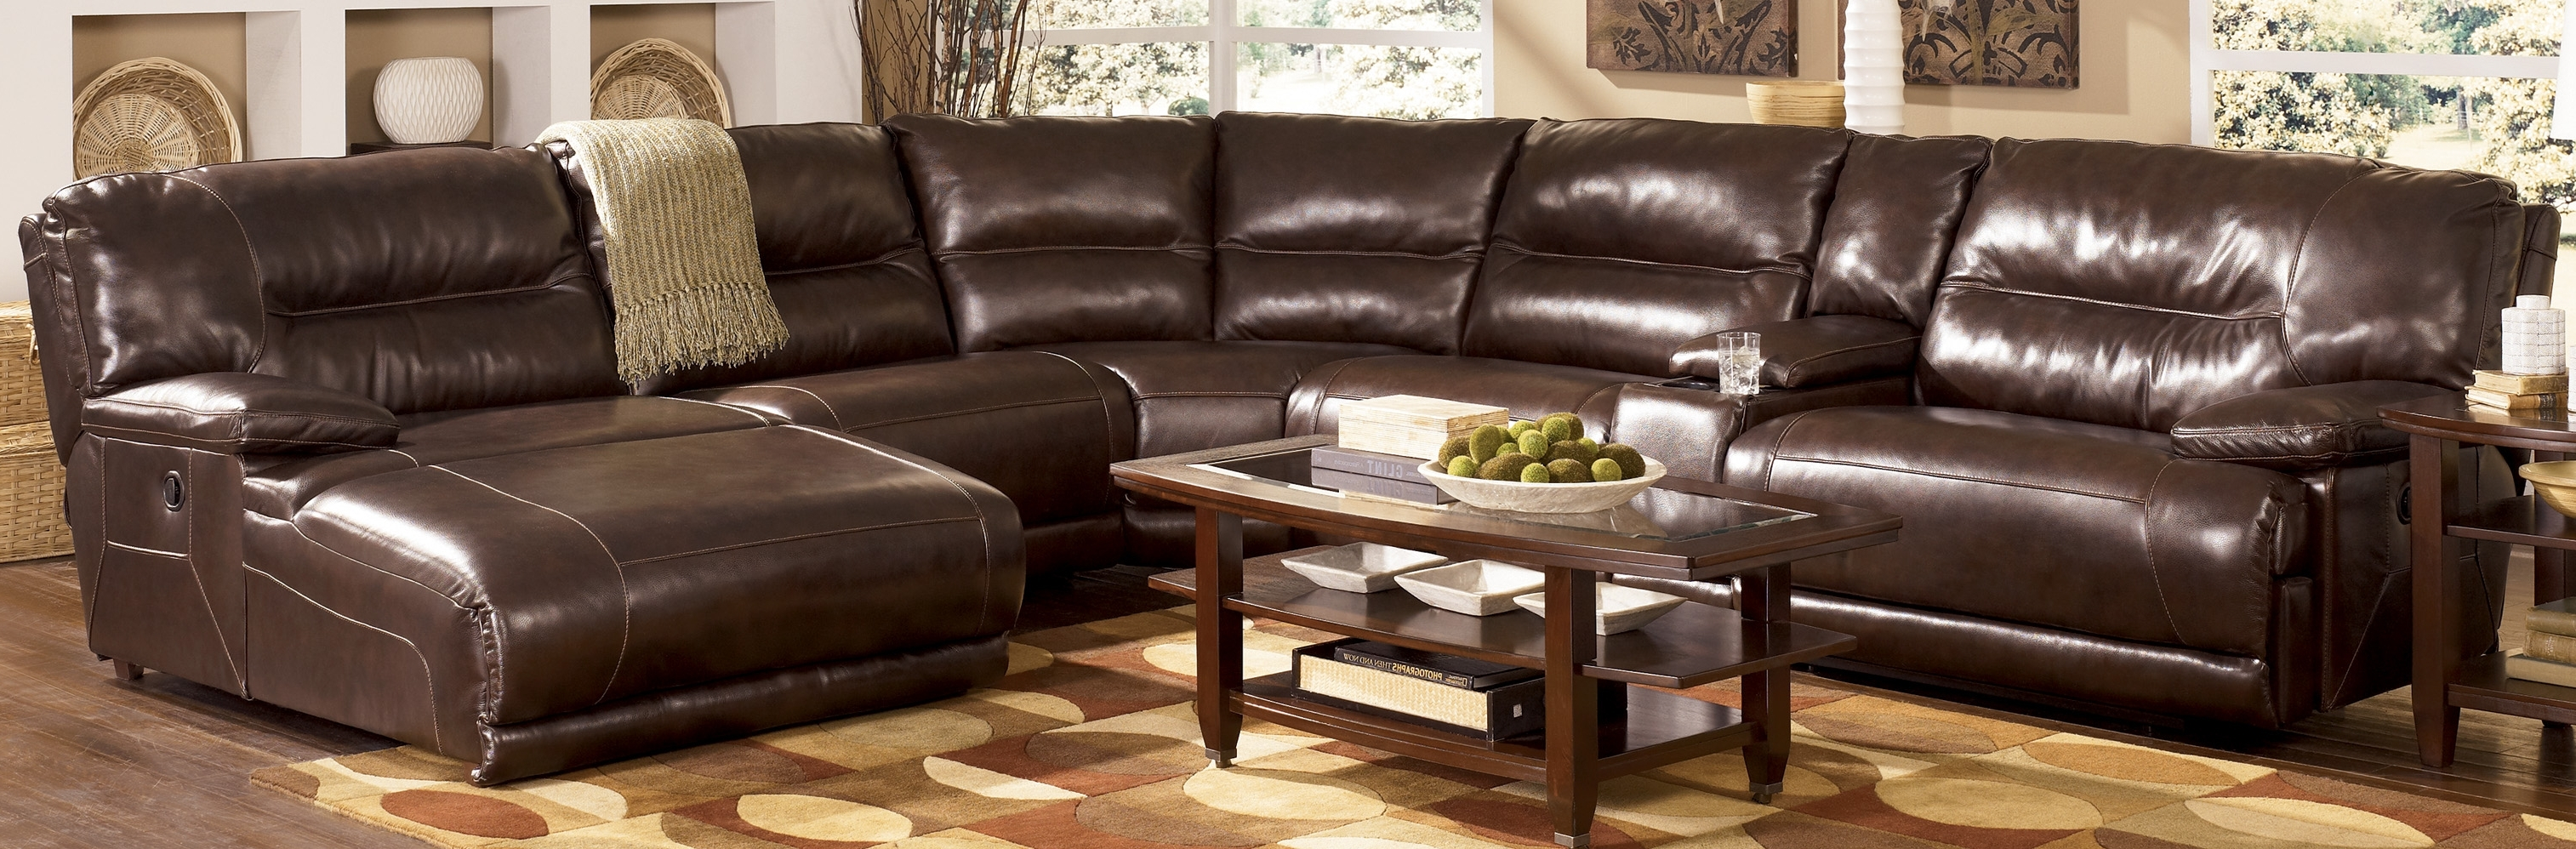 Genuine Leather Sectionals With Chaise Intended For Most Popular Faux Leather Sectional Sofa With Chaise (View 5 of 15)